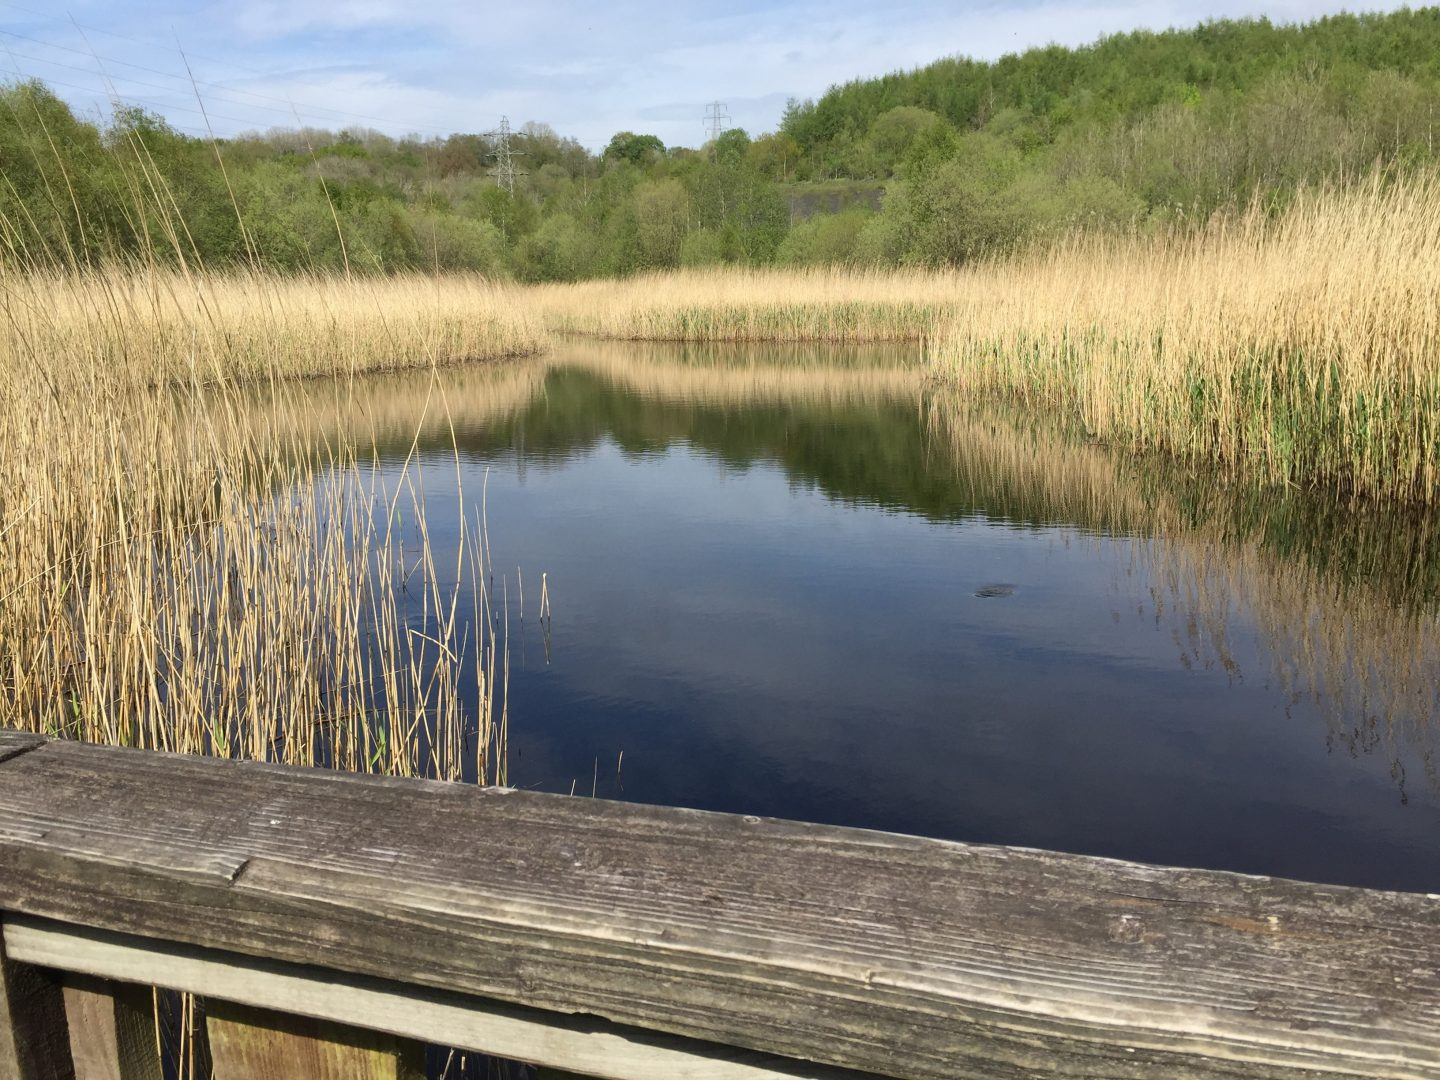 Low Barns Nature Reserve